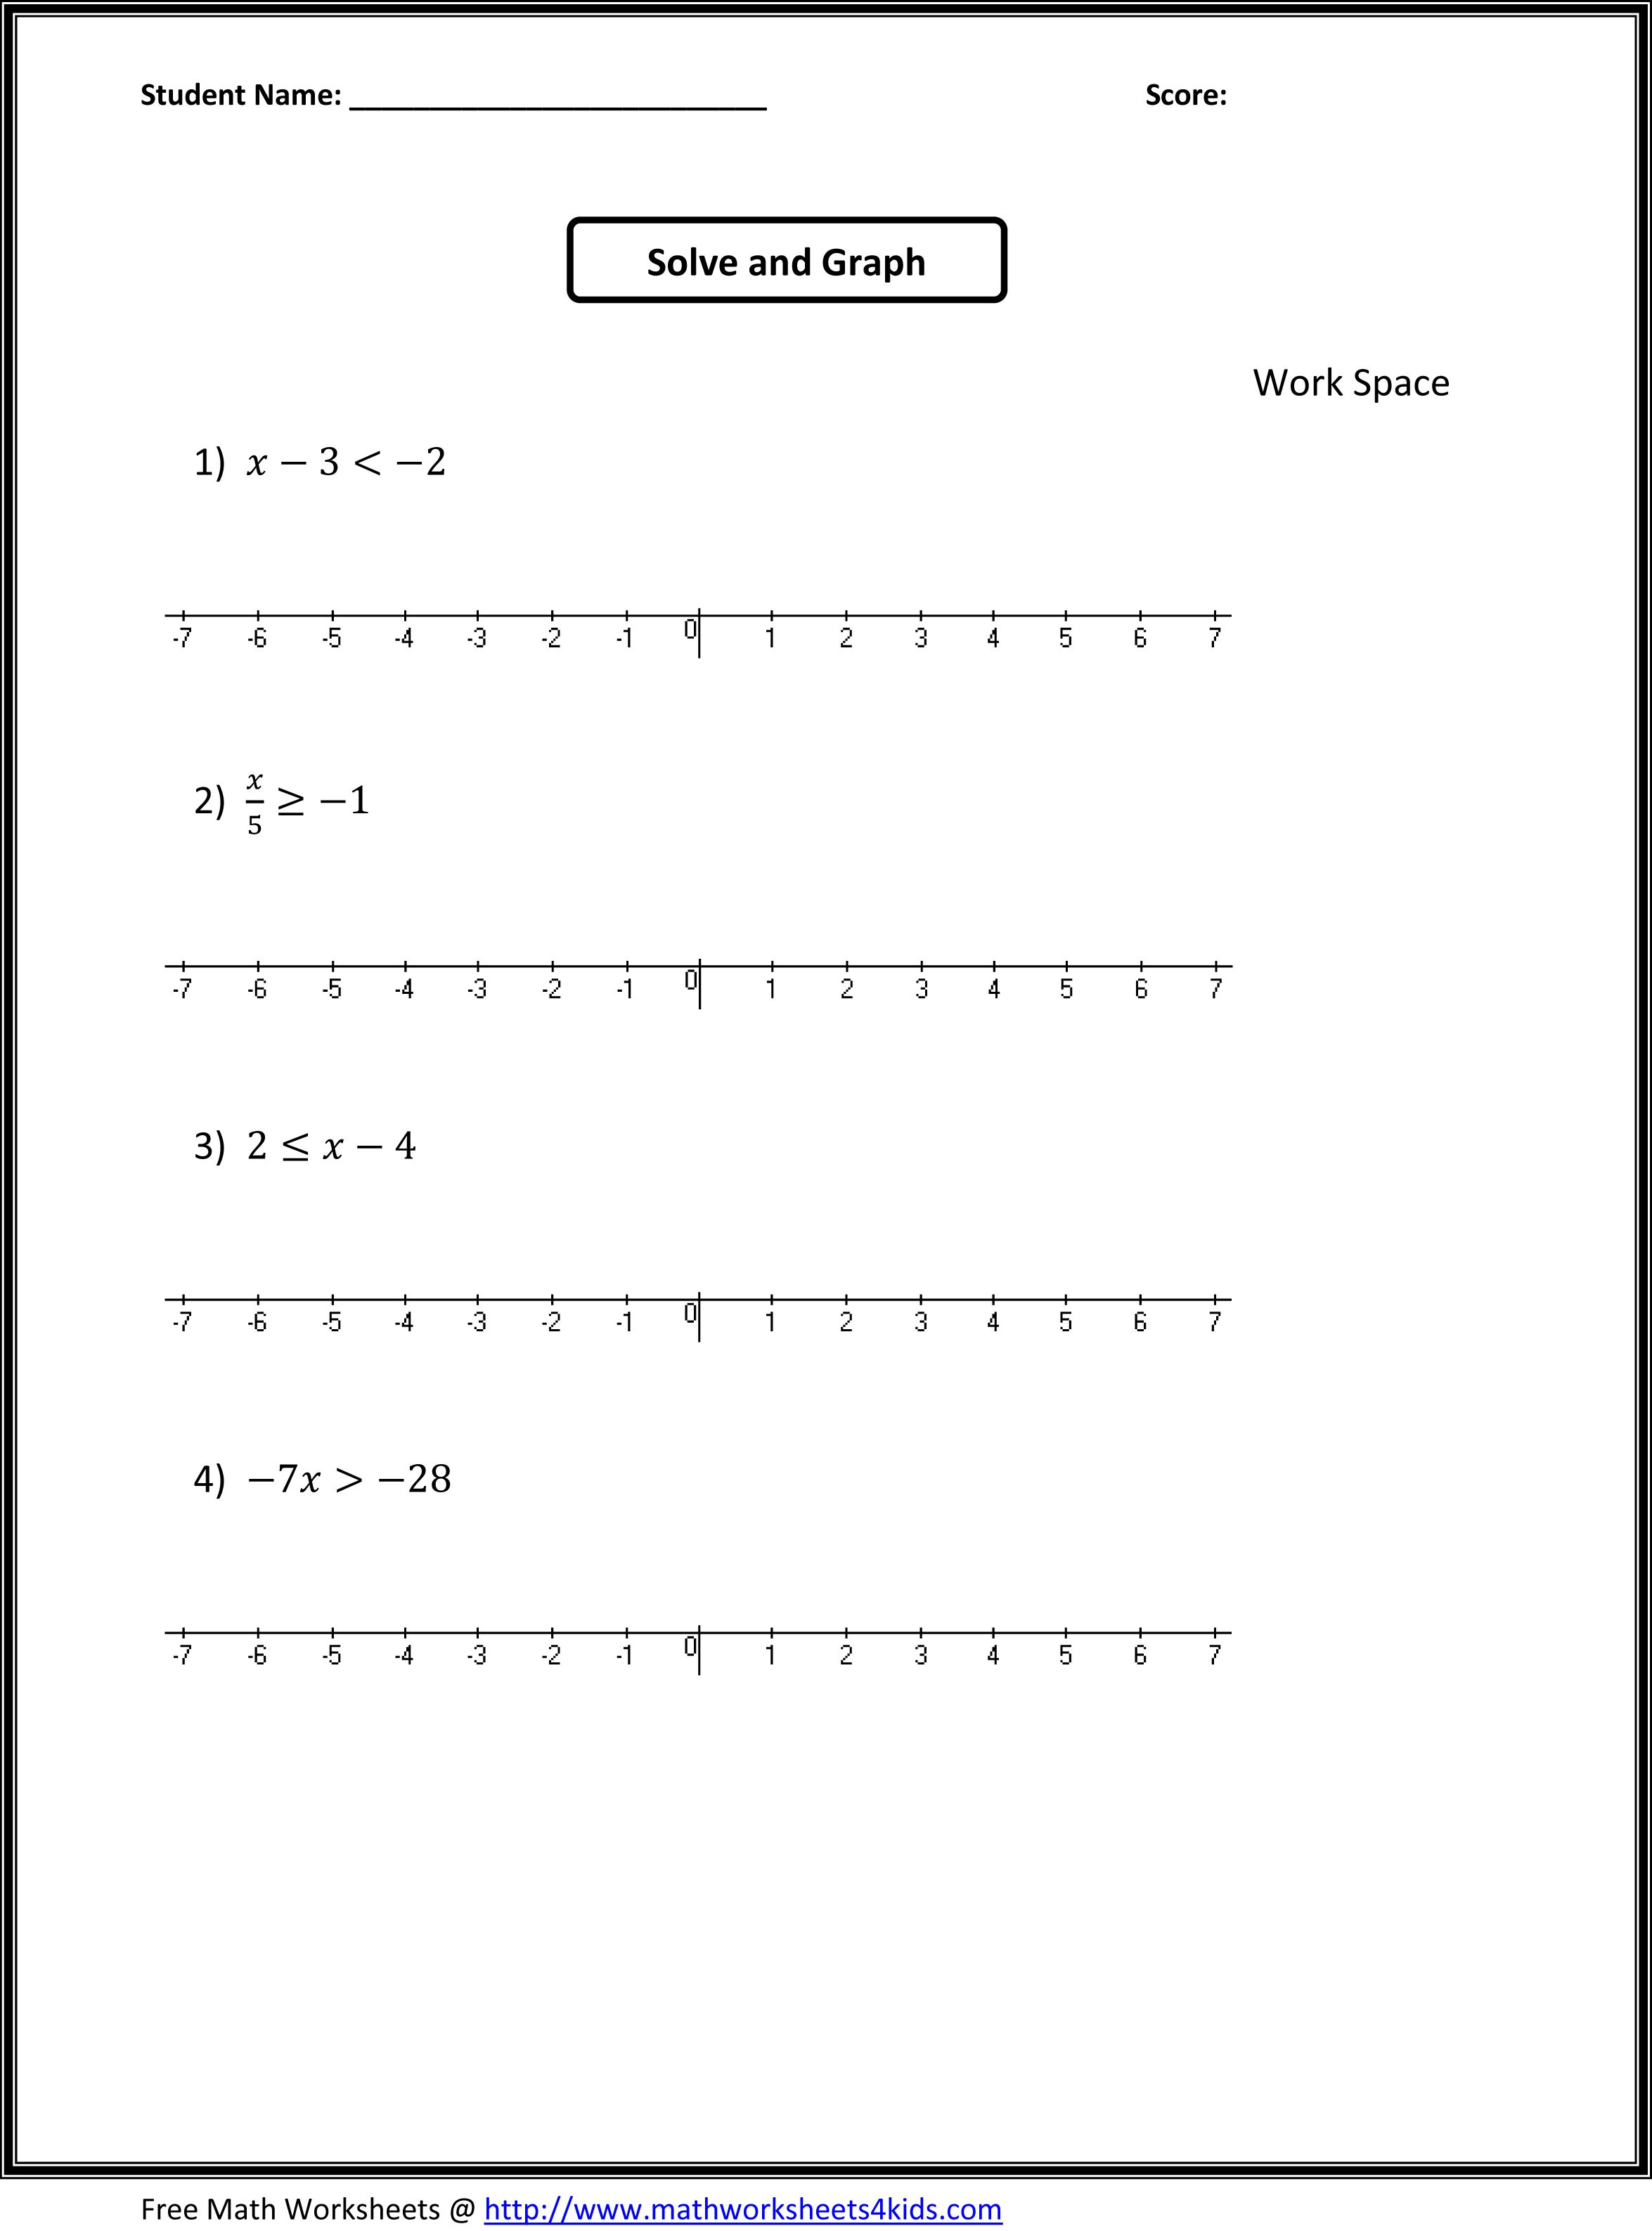 solving word problems in algebra is easy if you know the key steps 7th grade algebra worksheets 7th grade math worksheets